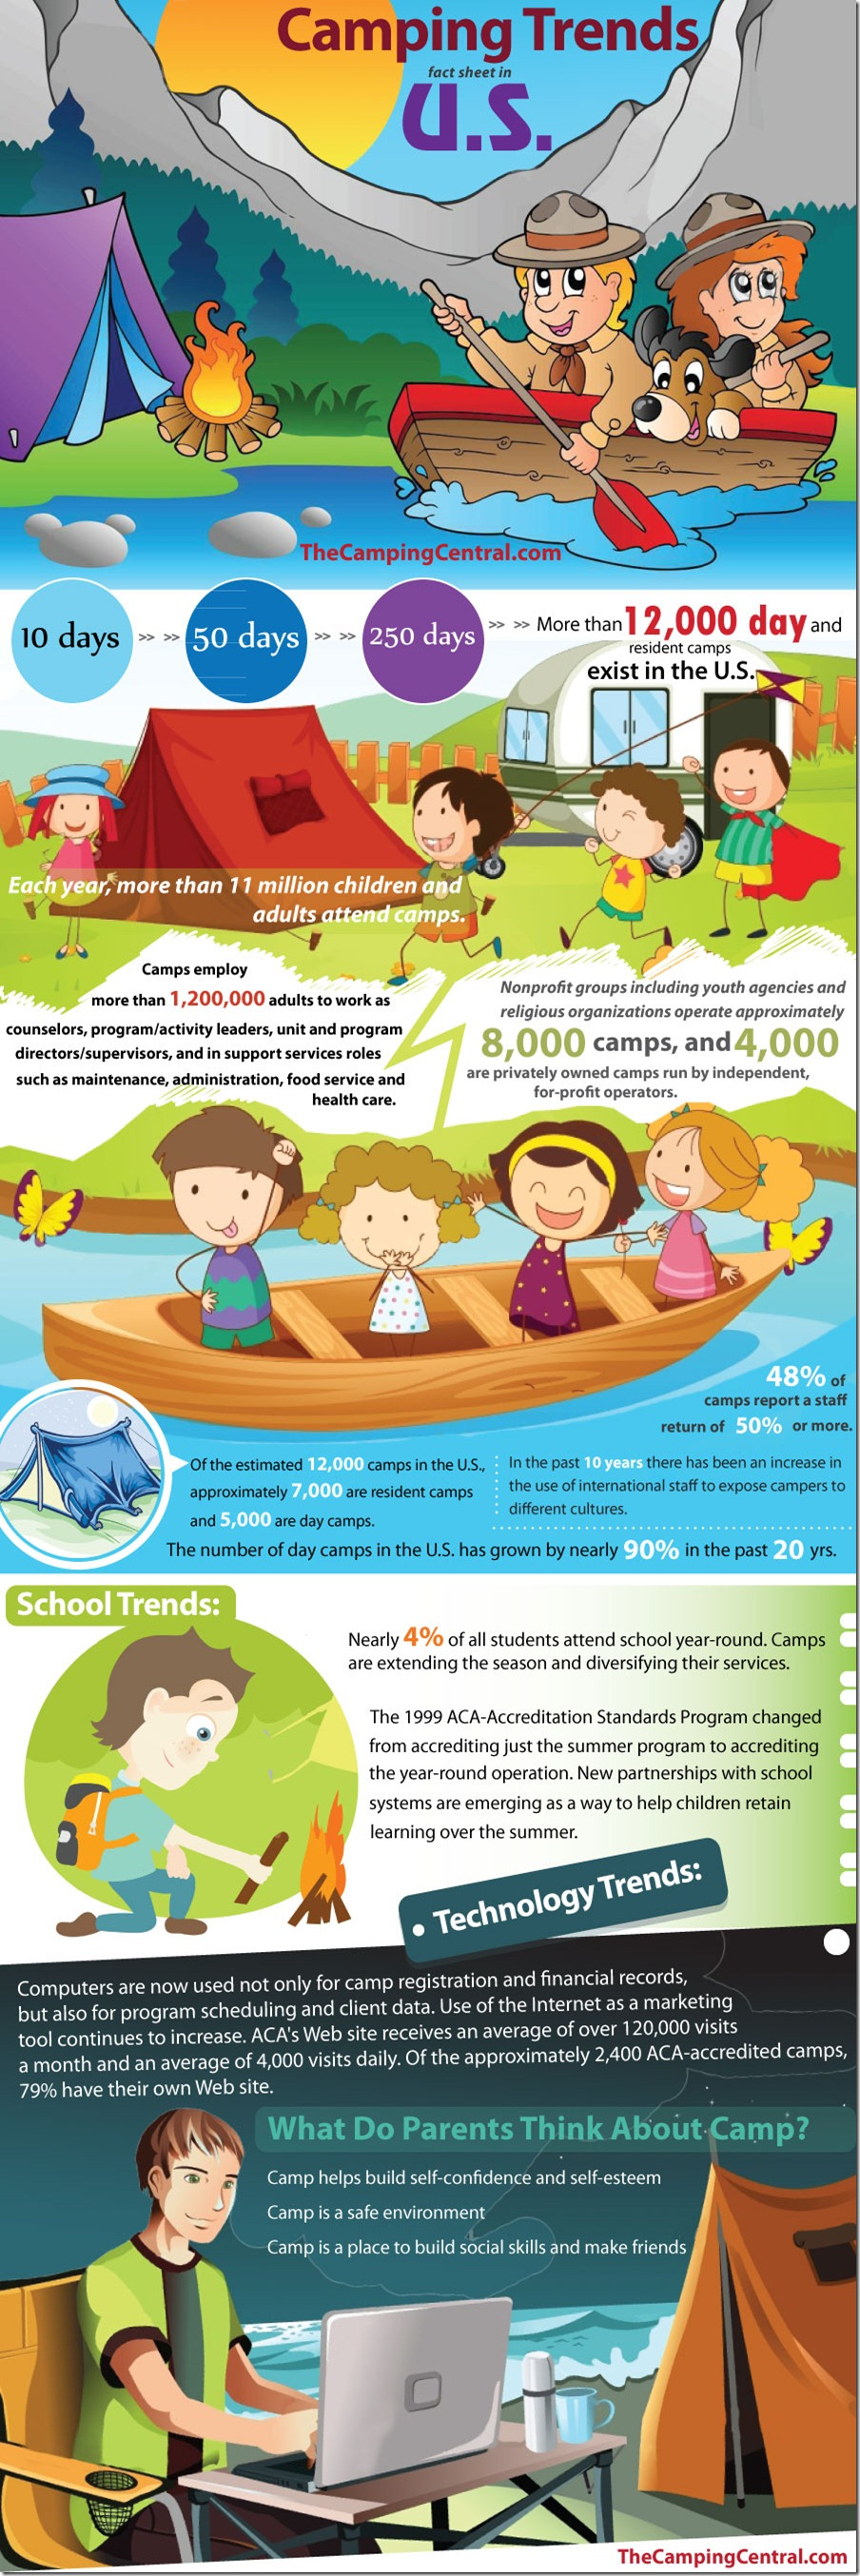 Camping-Trends-fact-sheet-in-US